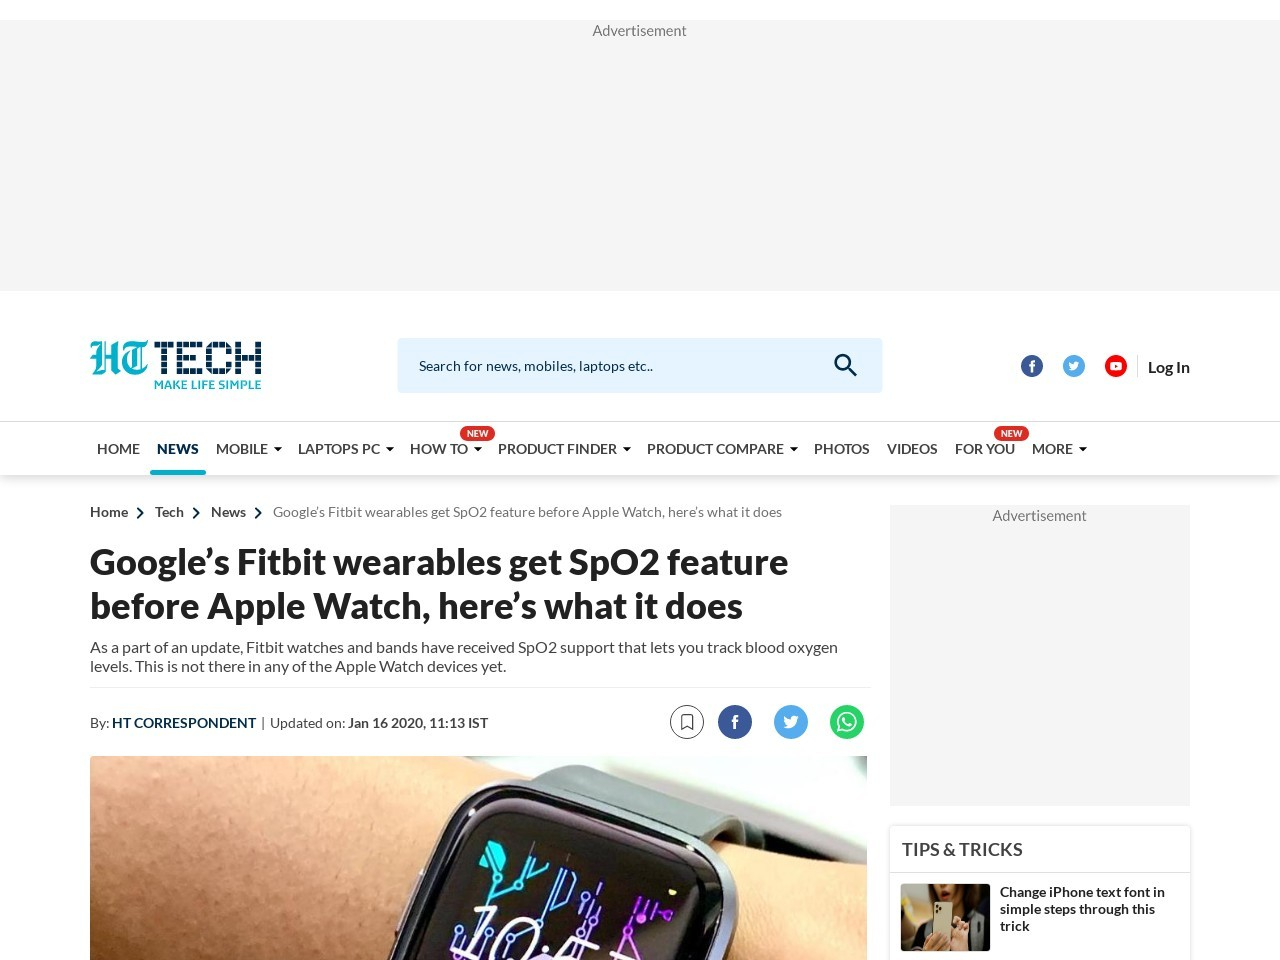 Google's Fitbit wearables get SpO2 feature before Apple Watch, here's what it does